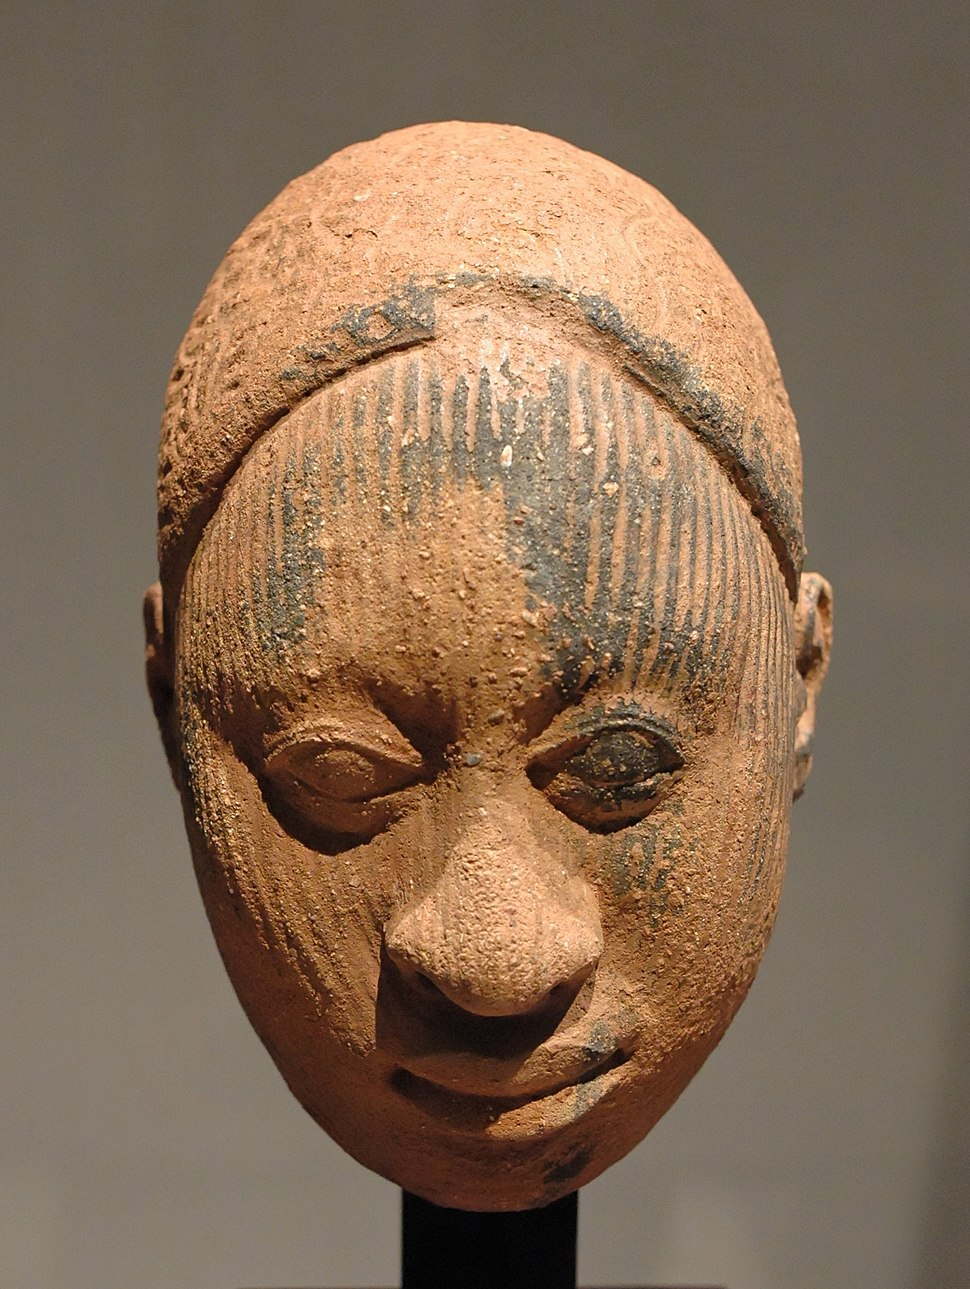 Ife sculpture Inv.A96-1-4